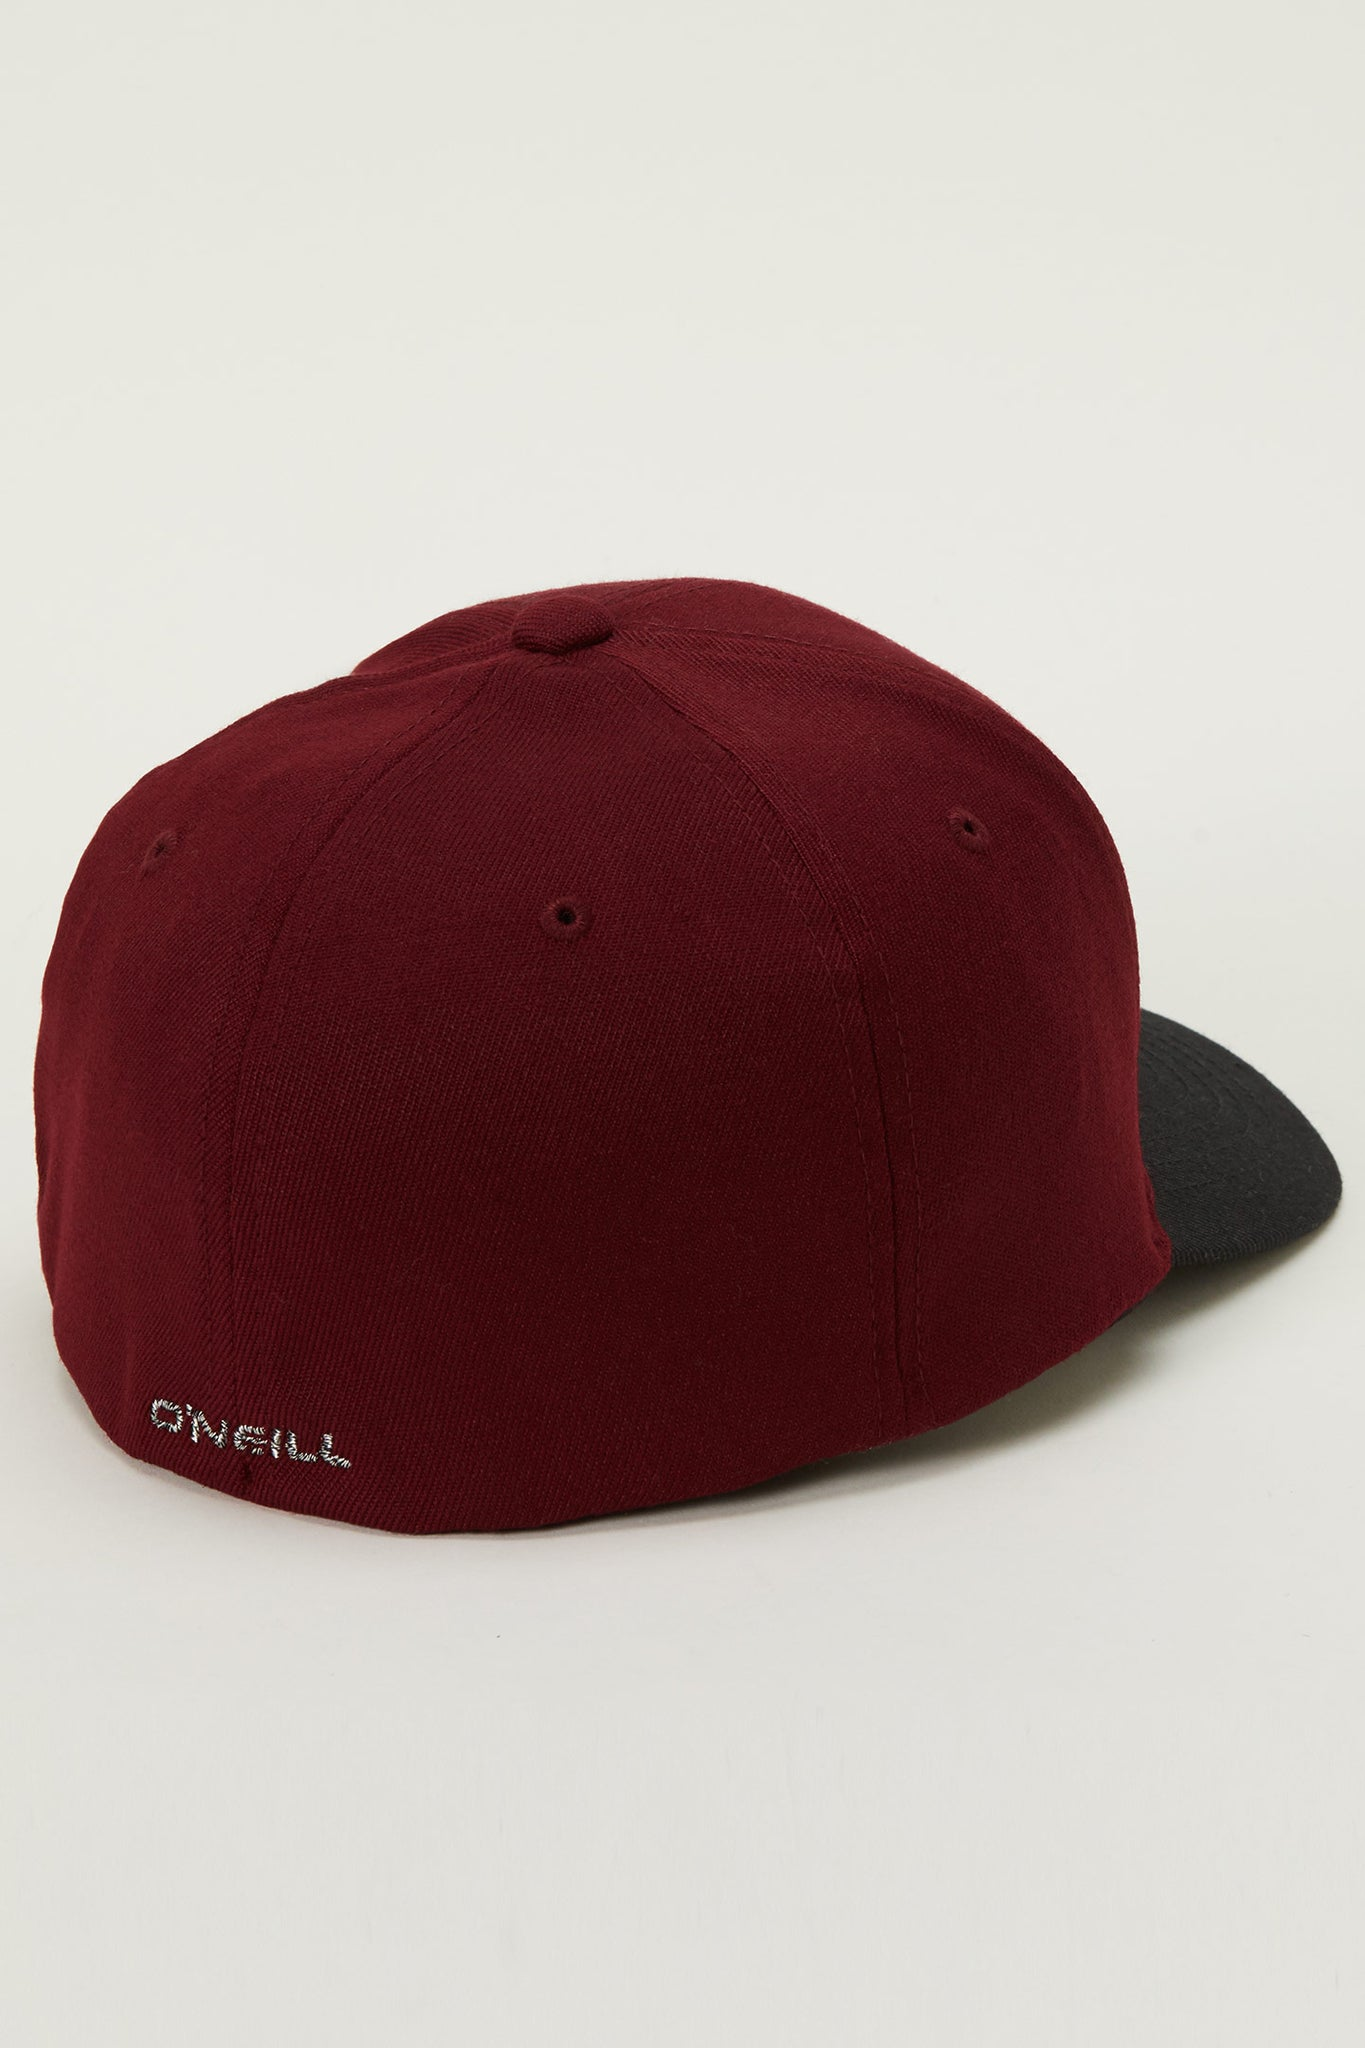 Clean & Mean Hat - Burgundy | O'Neill